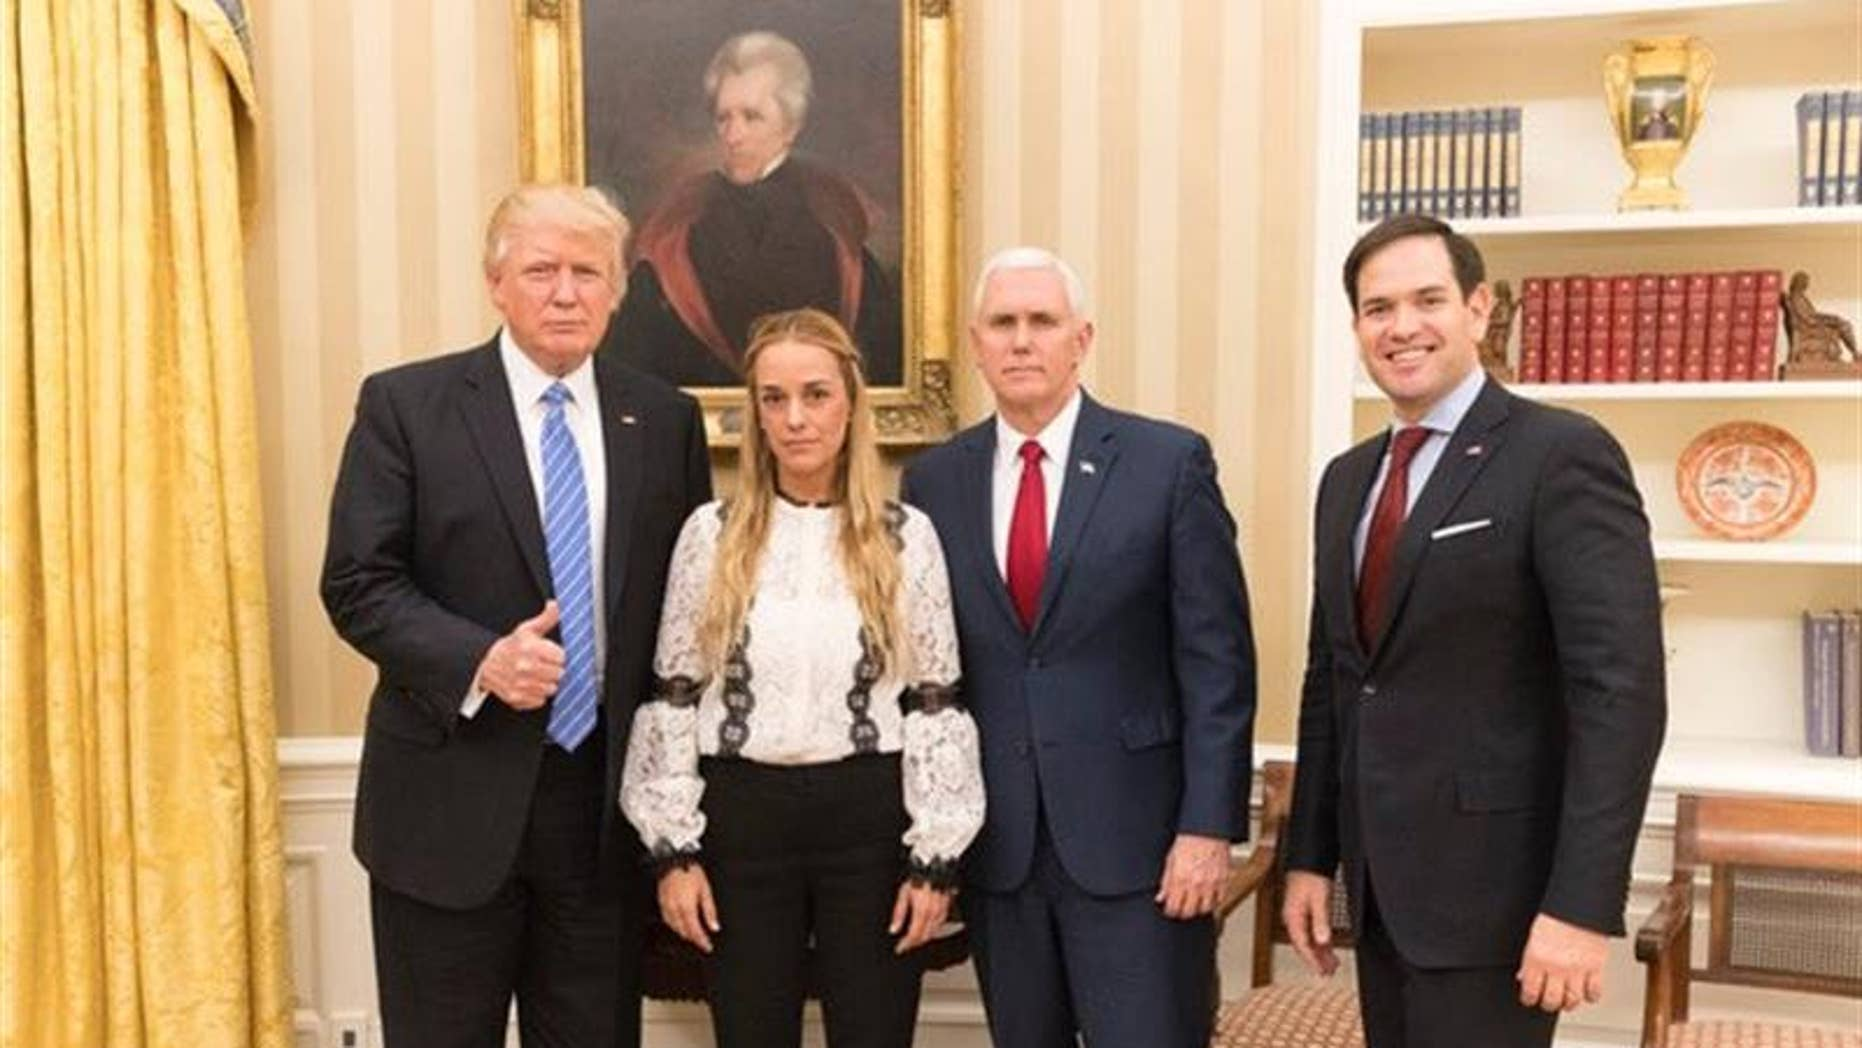 Photo provided by Lilian Tintori. at the Oval Office of the White House, on Feb. 15, 2017.